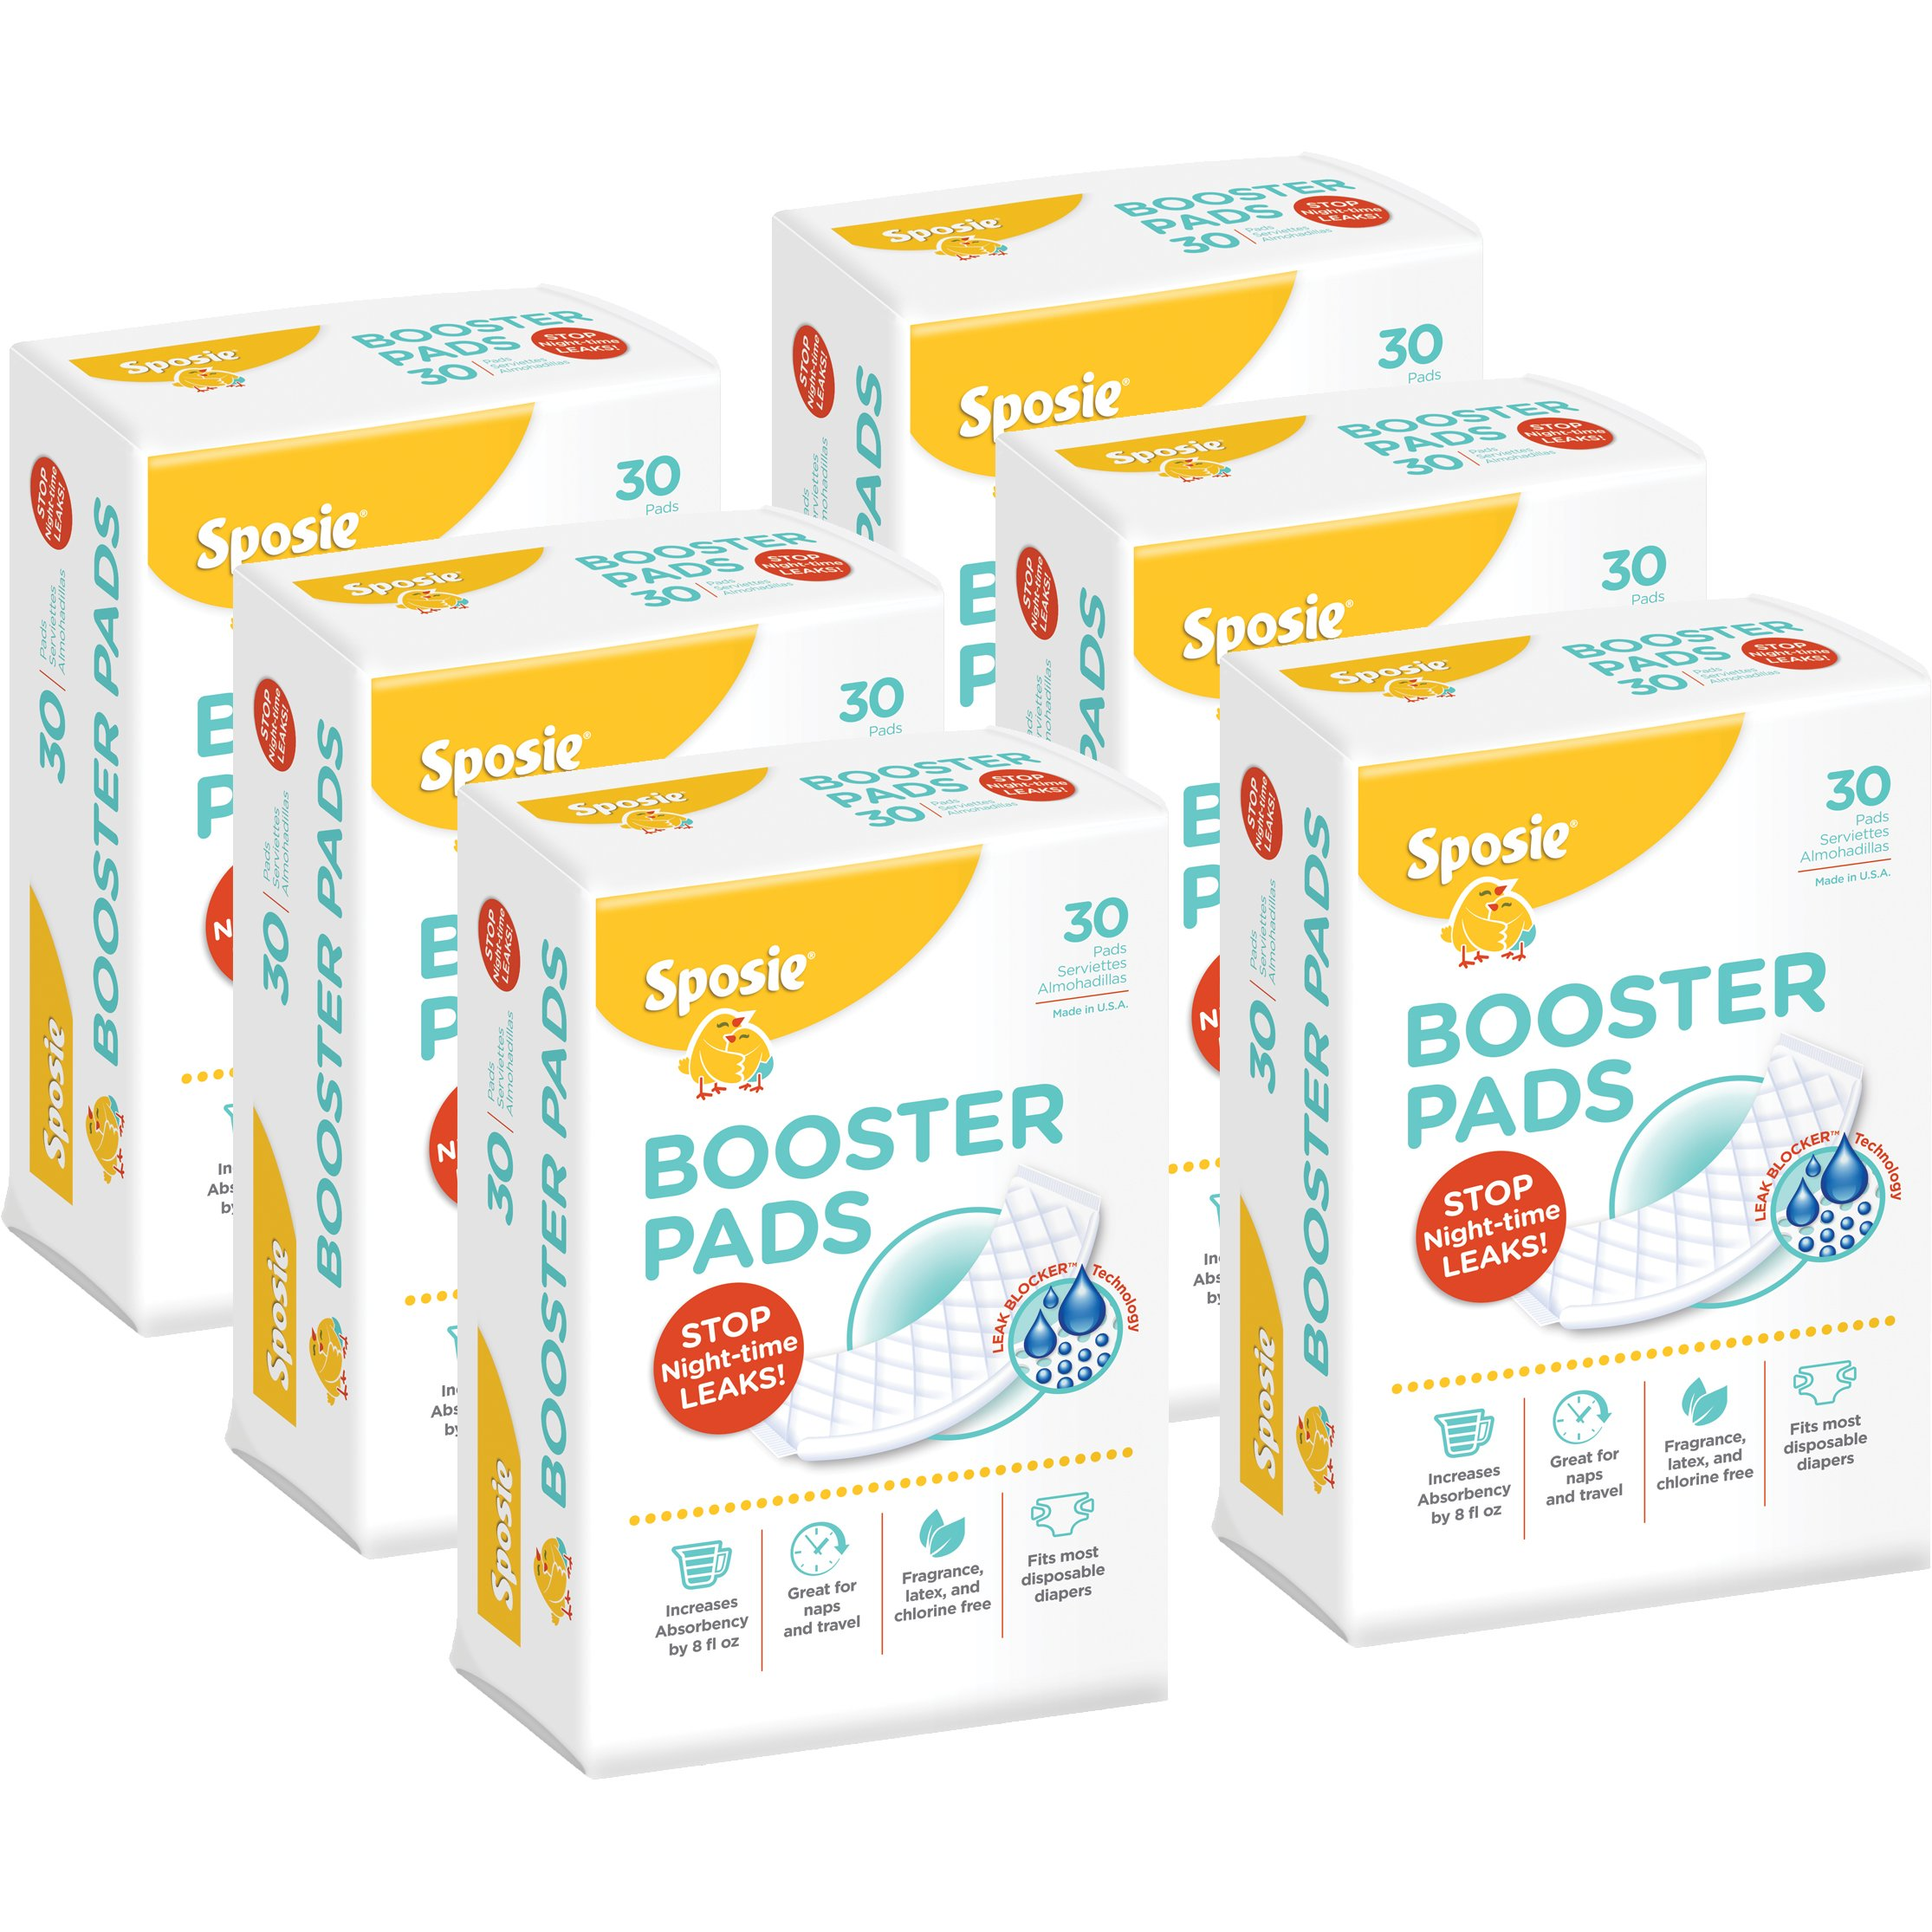 Sposie Booster Pads Diaper Doubler, 180 Count, 6 Packs of 30 Pads by Select Kids (Image #1)